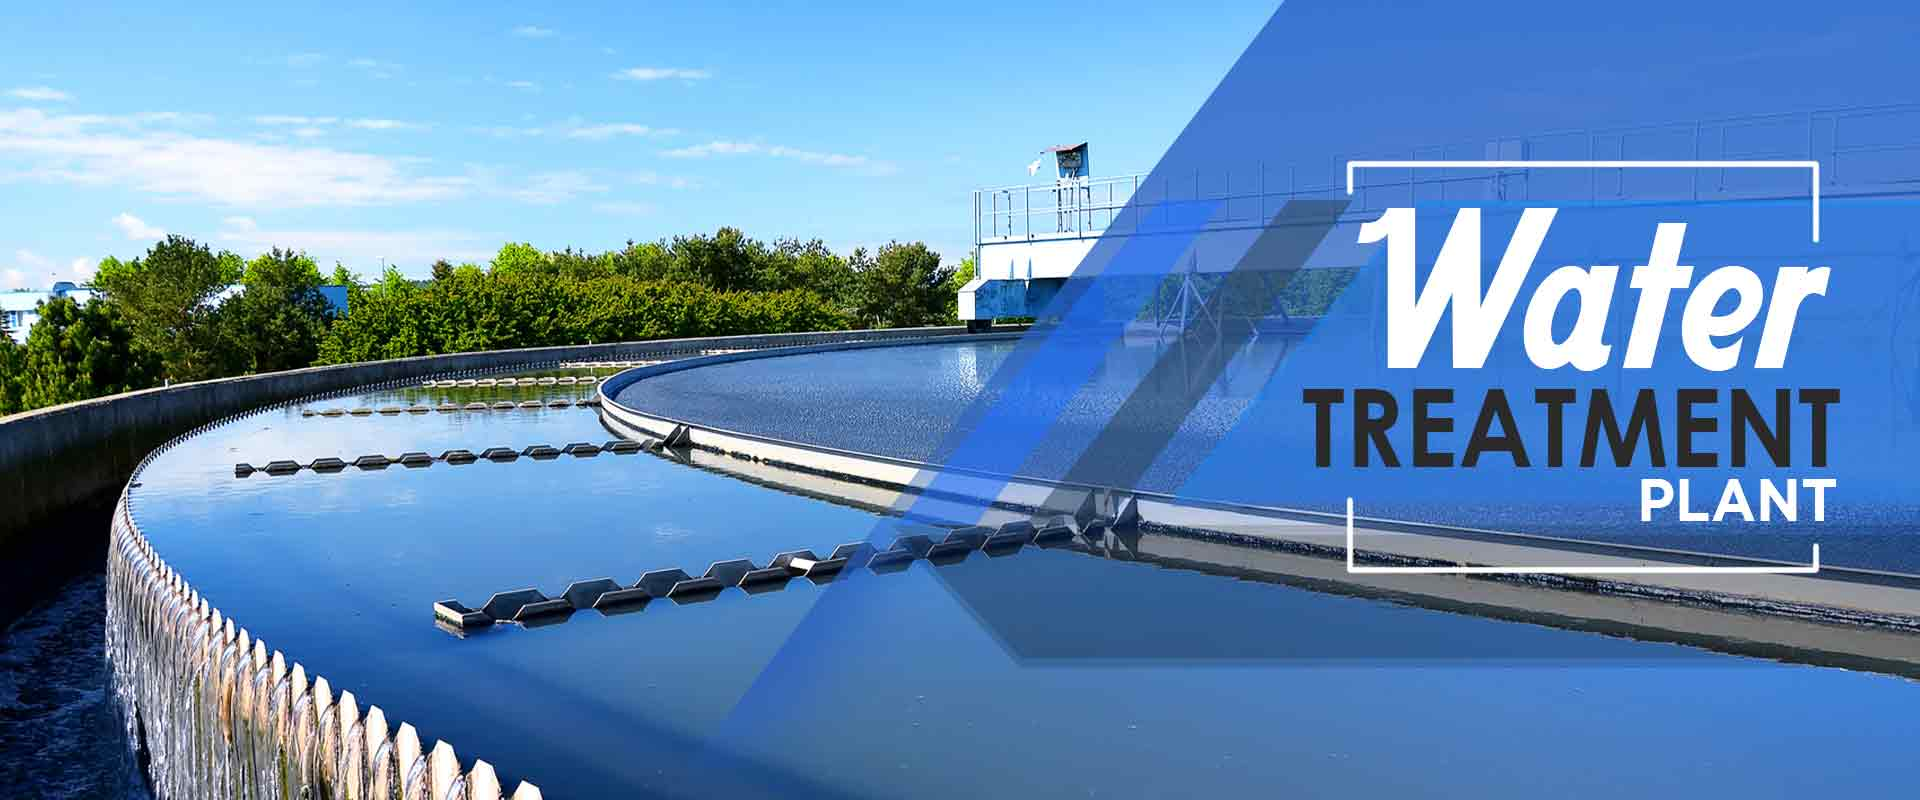 Water Treatment Plant Manufacturers In New Mexico